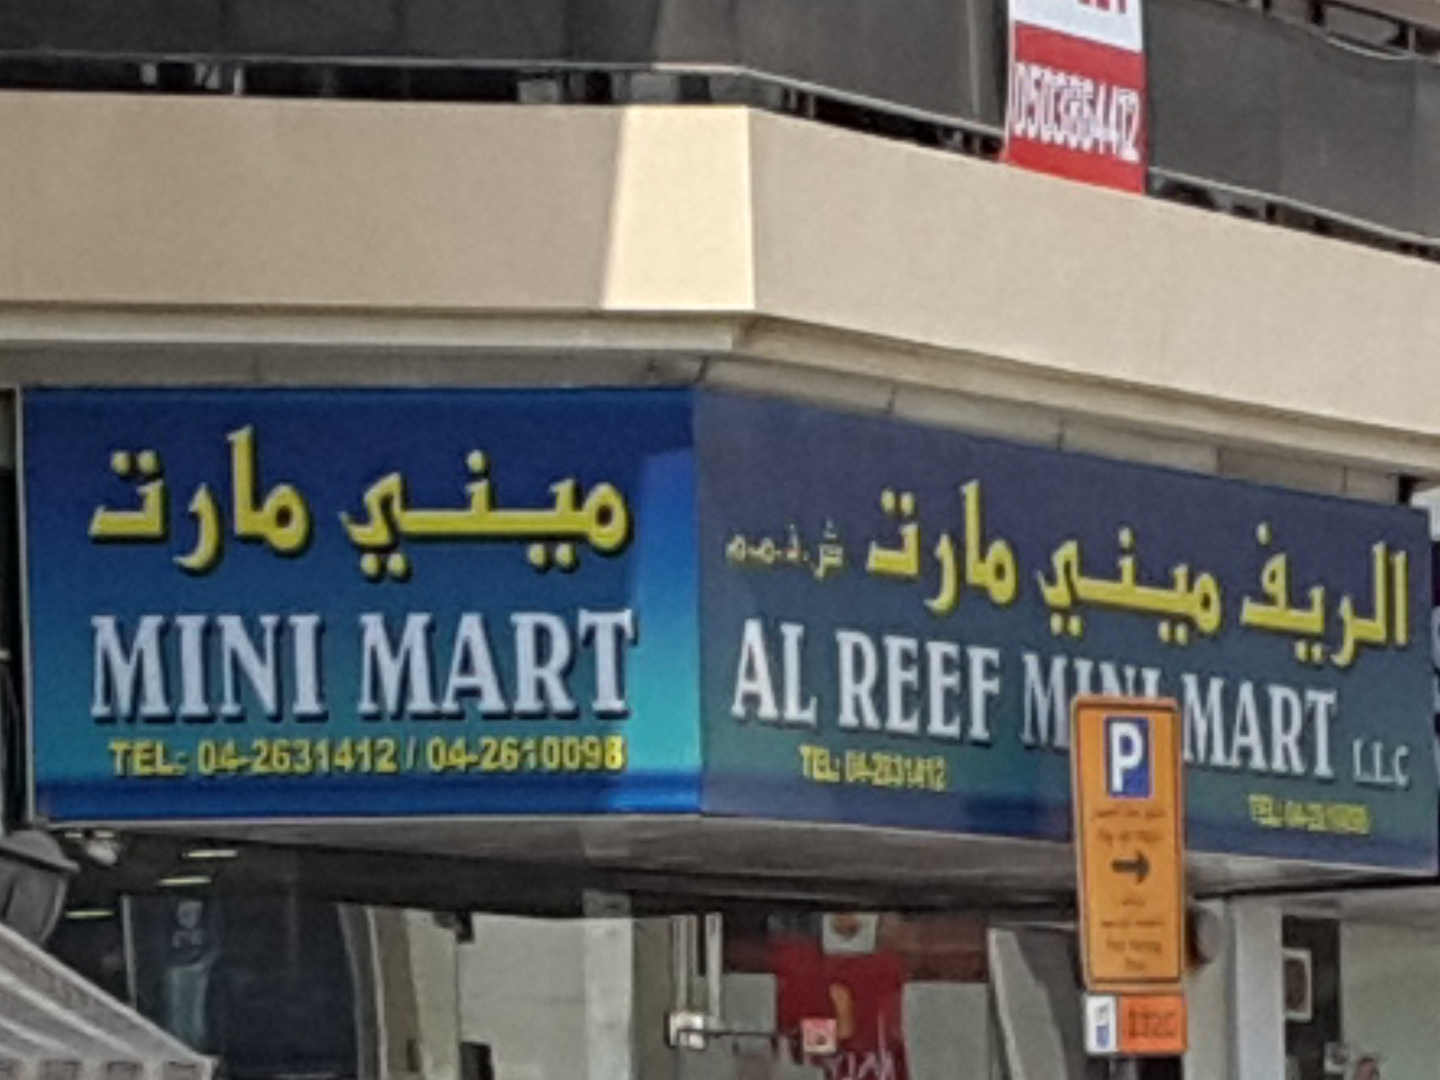 HiDubai-business-al-reef-mini-mart-shopping-supermarkets-hypermarkets-grocery-stores-al-qusais-1-dubai-2